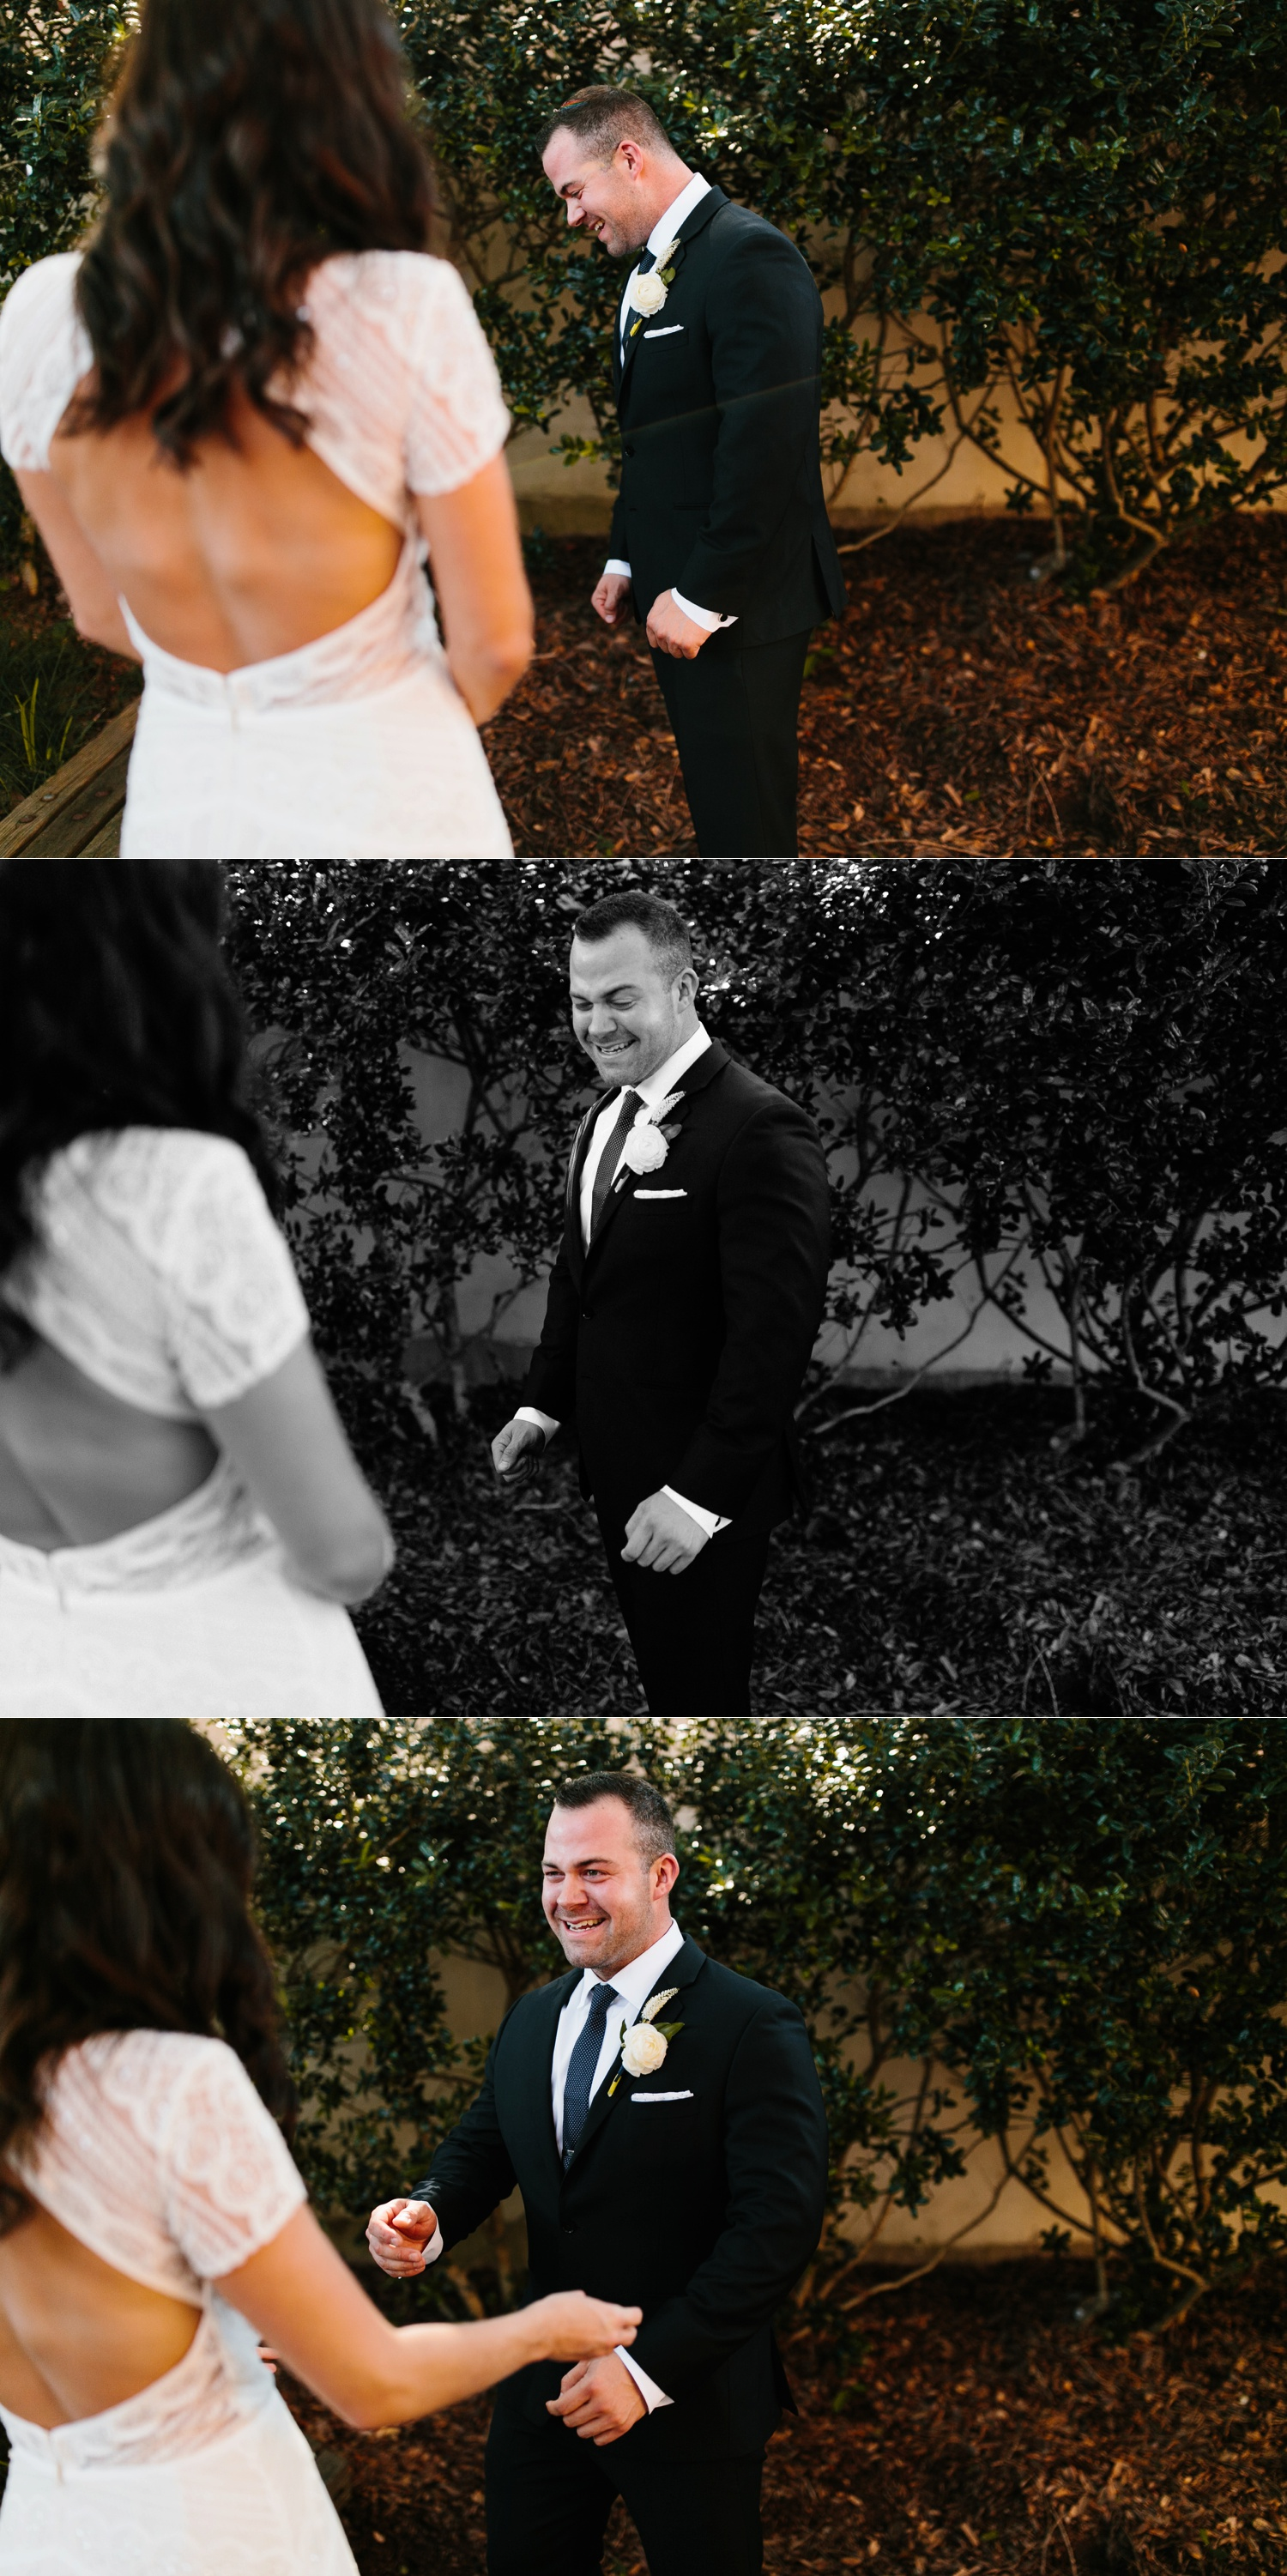 Kadee + Tyler | a raw, emotional wedding at the Filter Building on White Rock Lake in Dallas, TX by North Texas Wedding Photographer, Rachel Meagan Photography 060